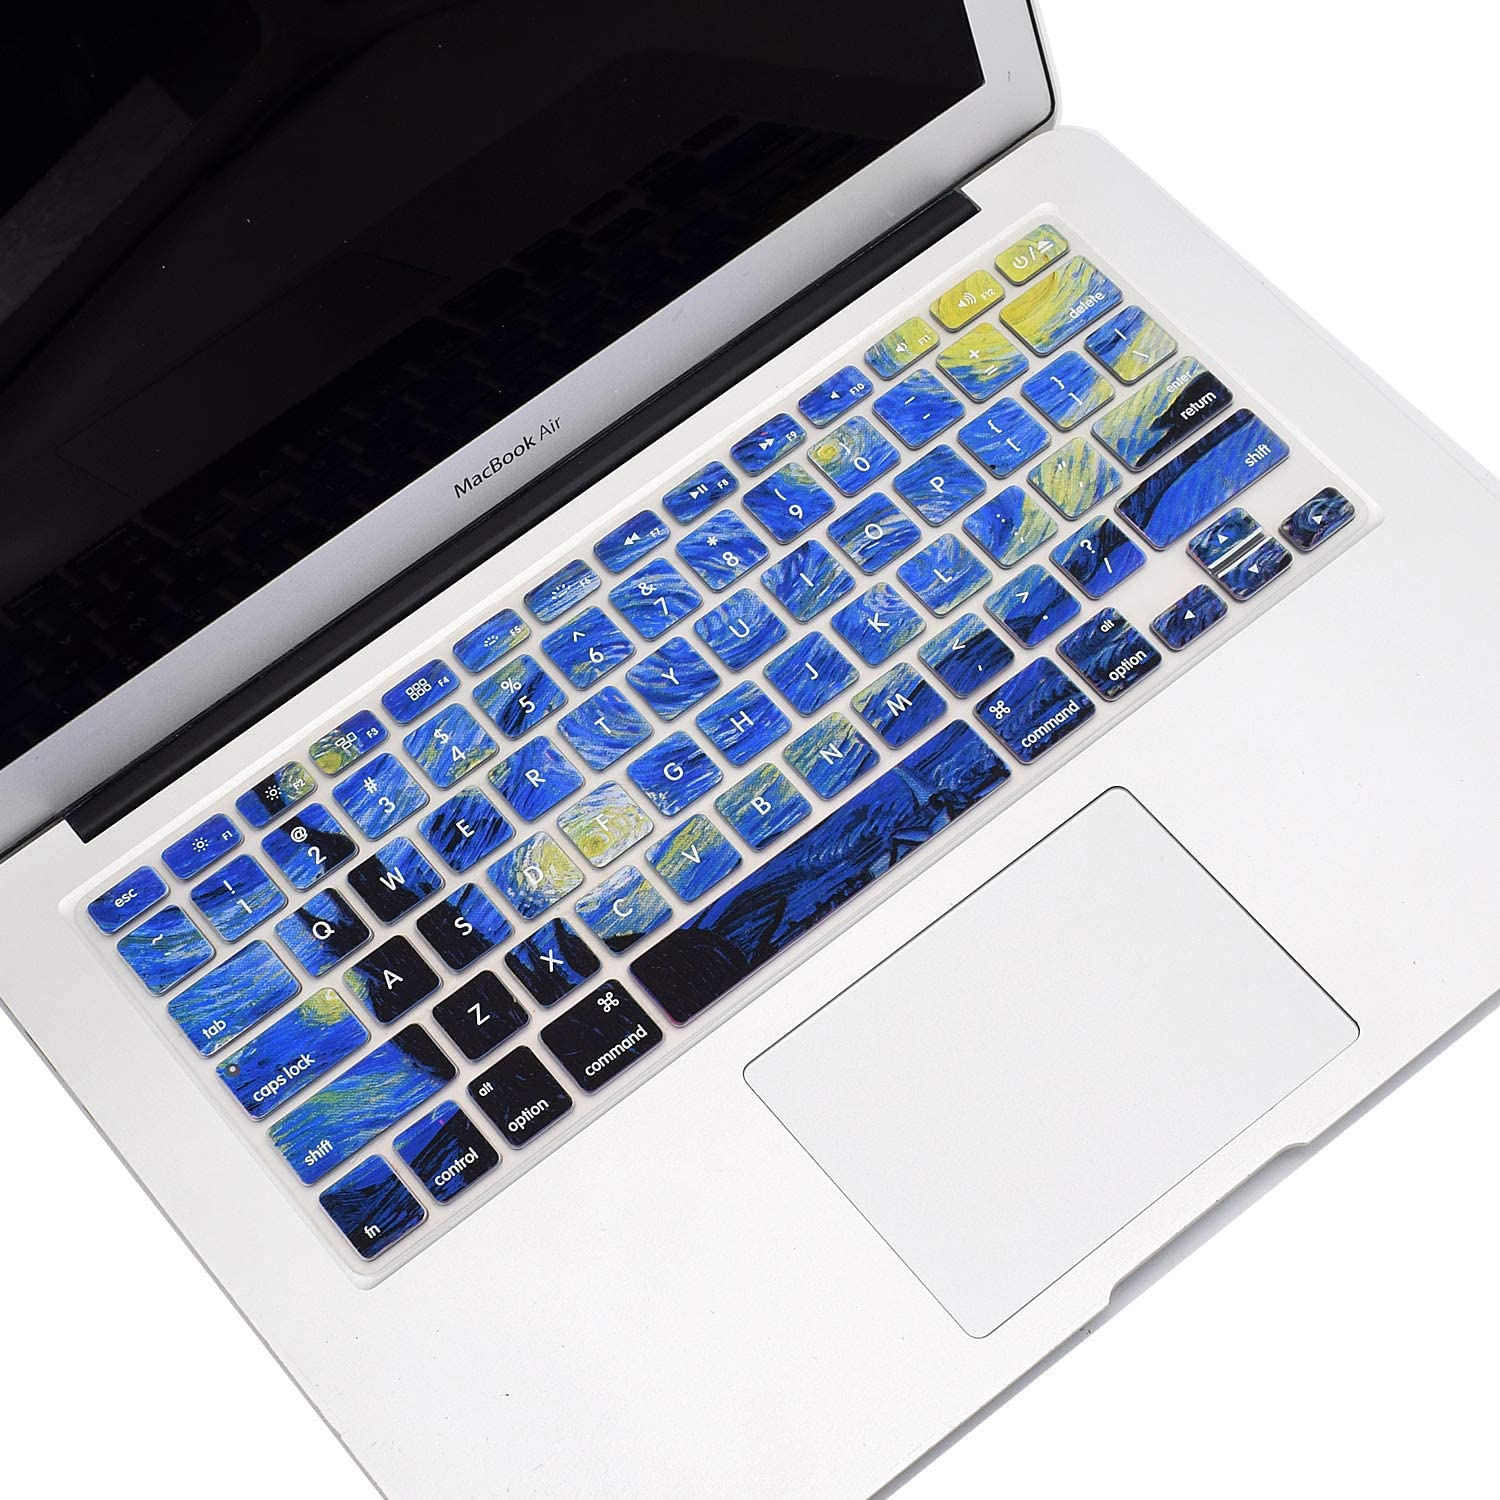 Funut MacBook Keyboard Cover Dust-Proof Silicone Keyboard Protector for MacBook Pro 13 15 17 with or Without Retina Display, 2015 or Older Version iMac and Air 13, Van Gogh Starry Night